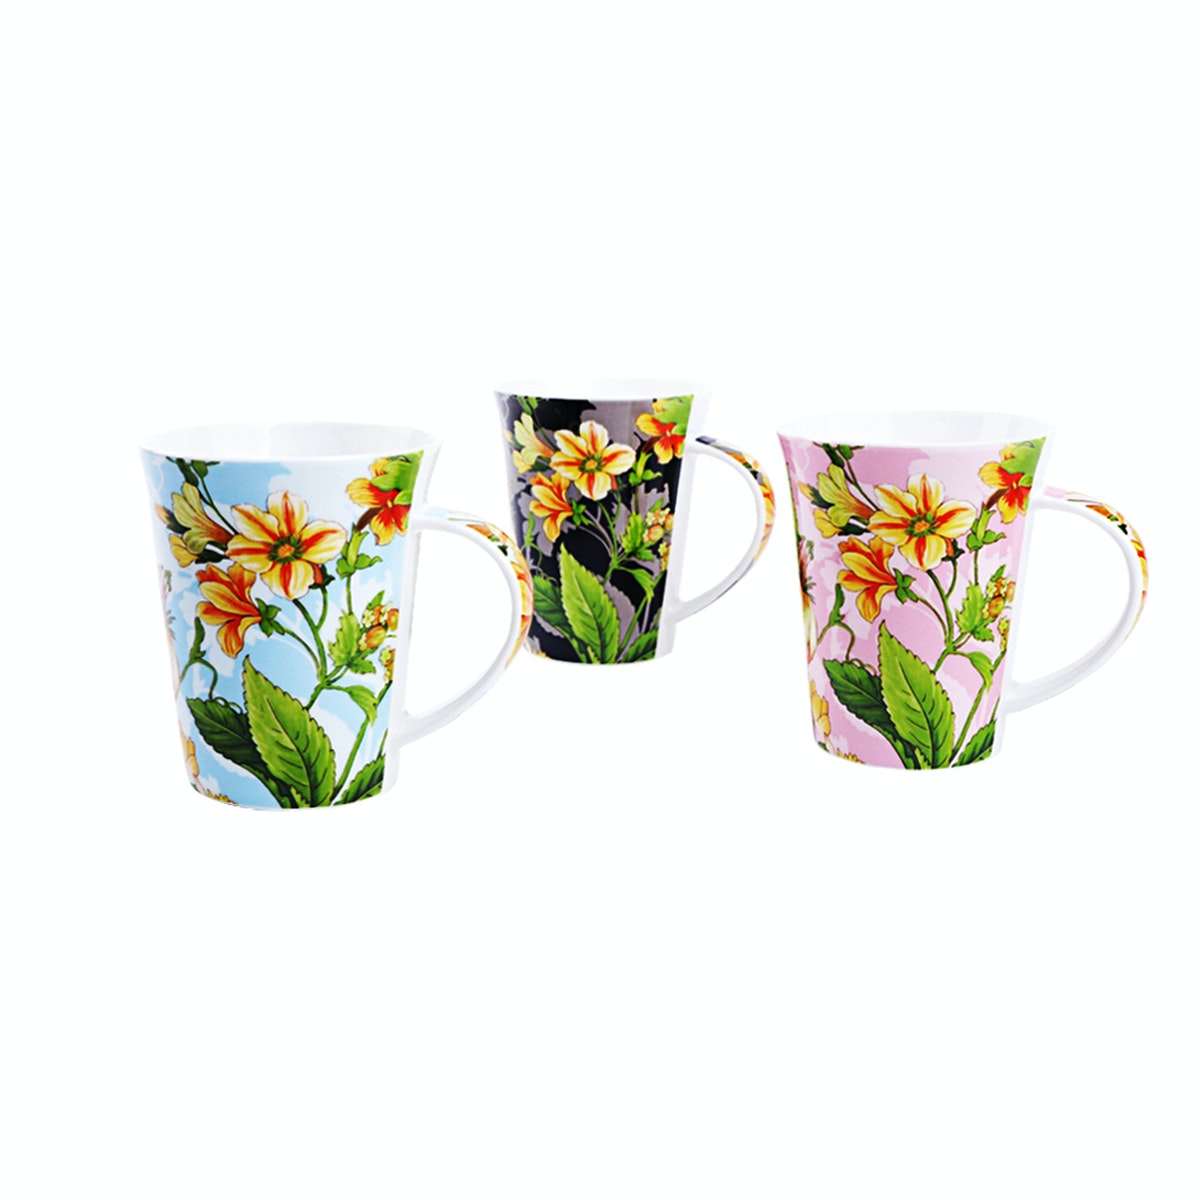 Nakami 3 Pcs New Bone Mug Set A053